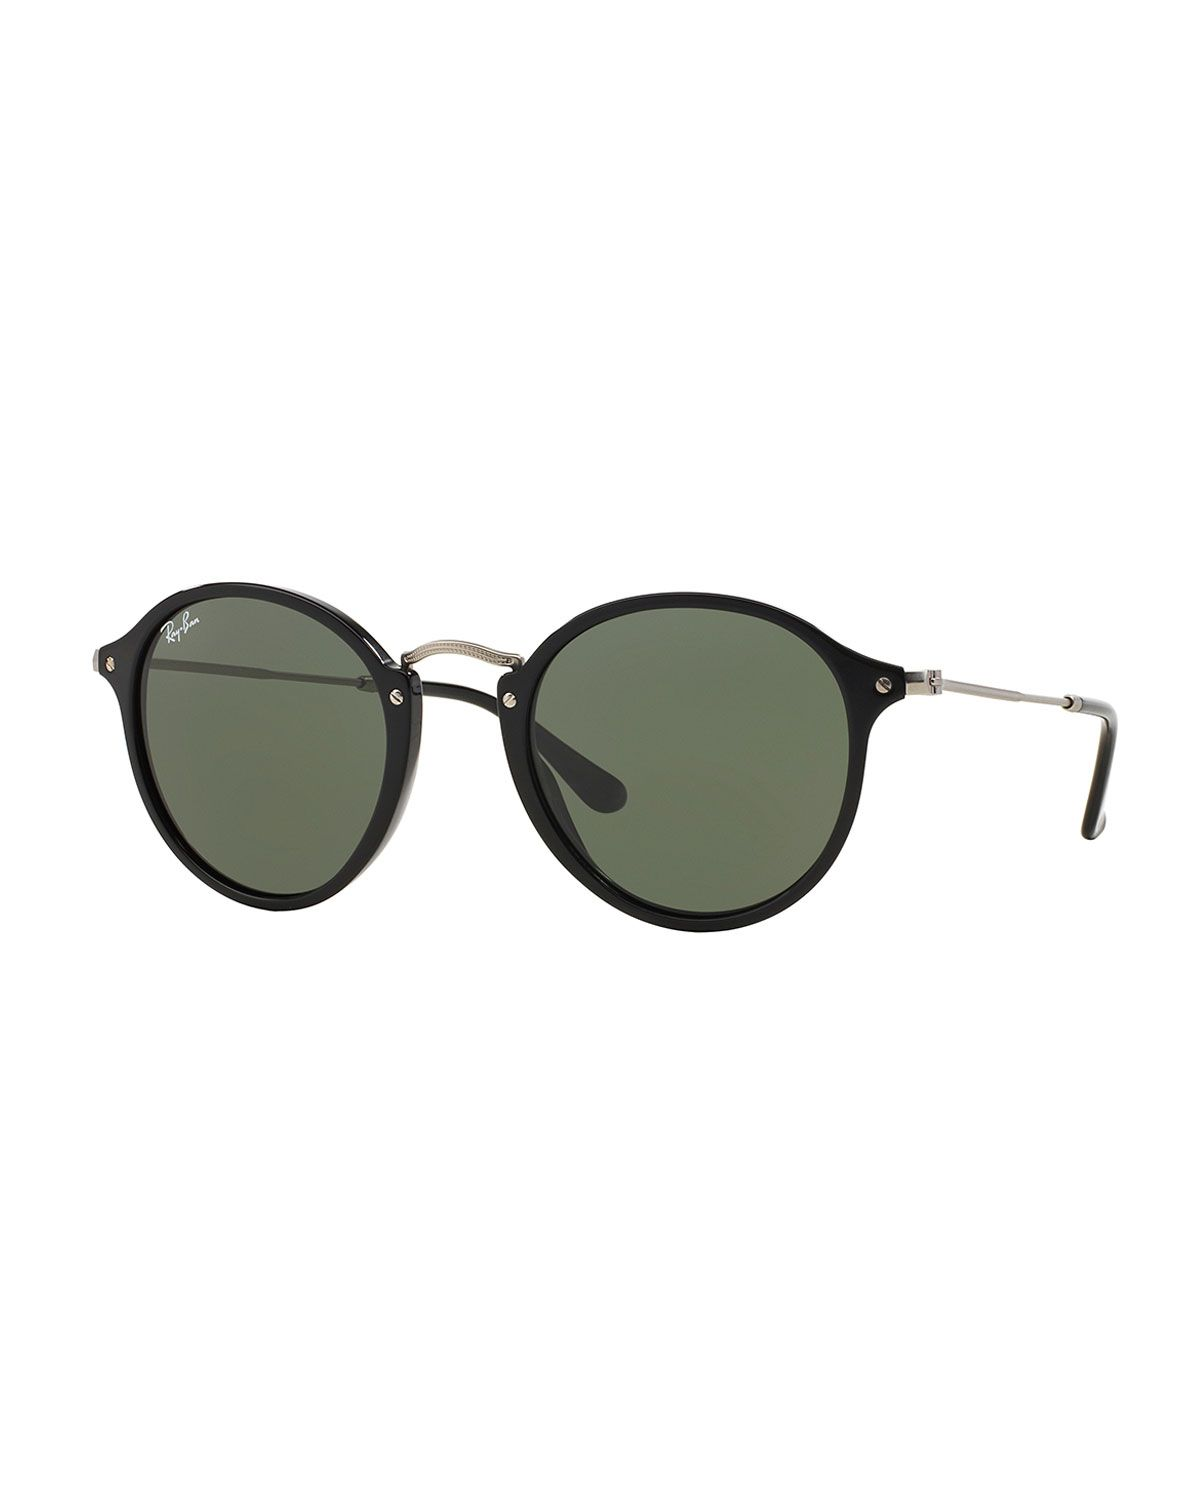 3c07d57ed Ray-Ban round sunglasses. Keyhole nosebridge. Acetate frames. Gray lenses.  100% UV protection. Made in Italy.